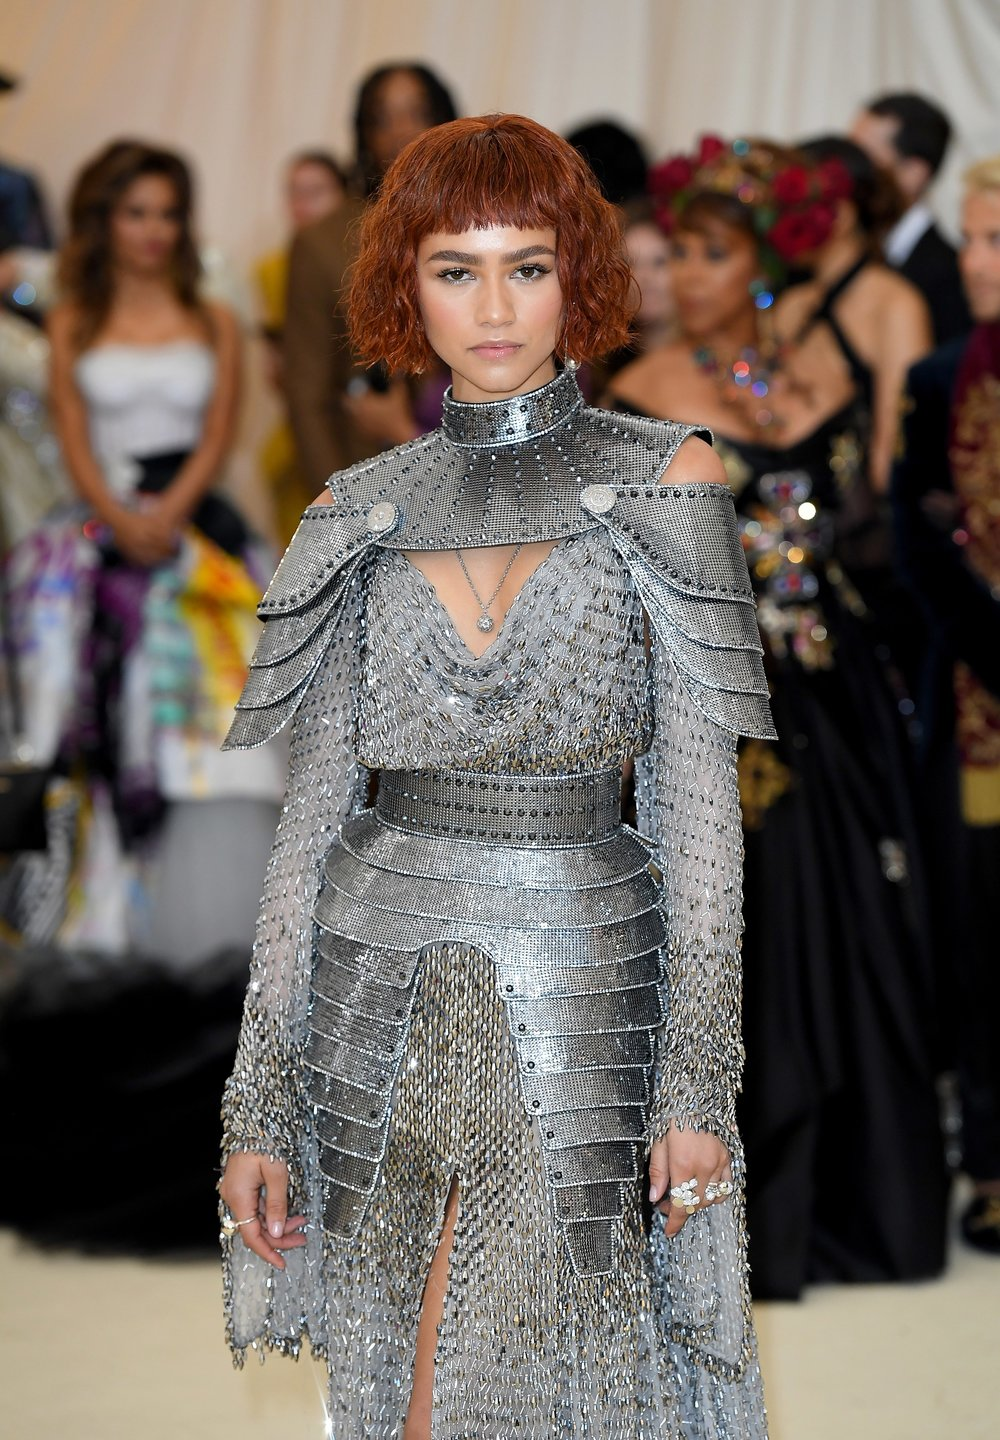 ZENDAYA MET GALA 2018 RED CARPET.jpg